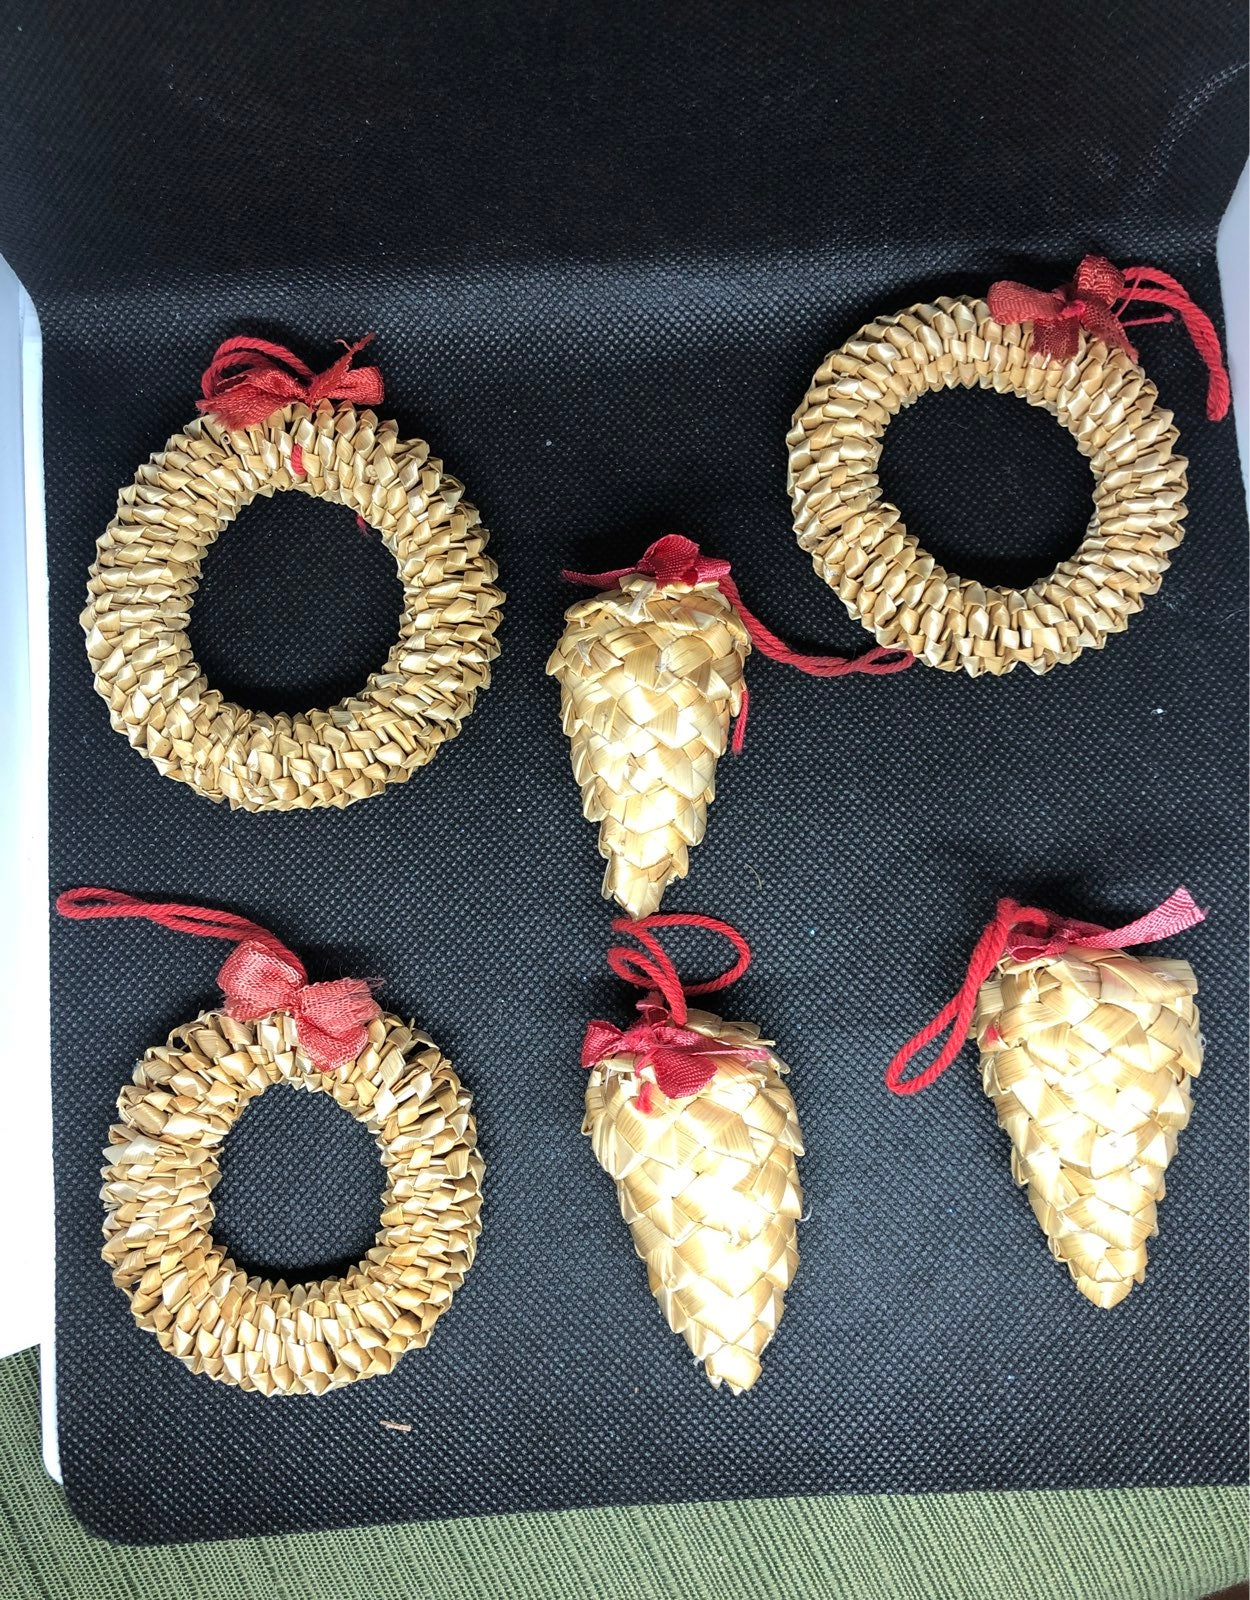 6 vintage woven straw Christmas ornament